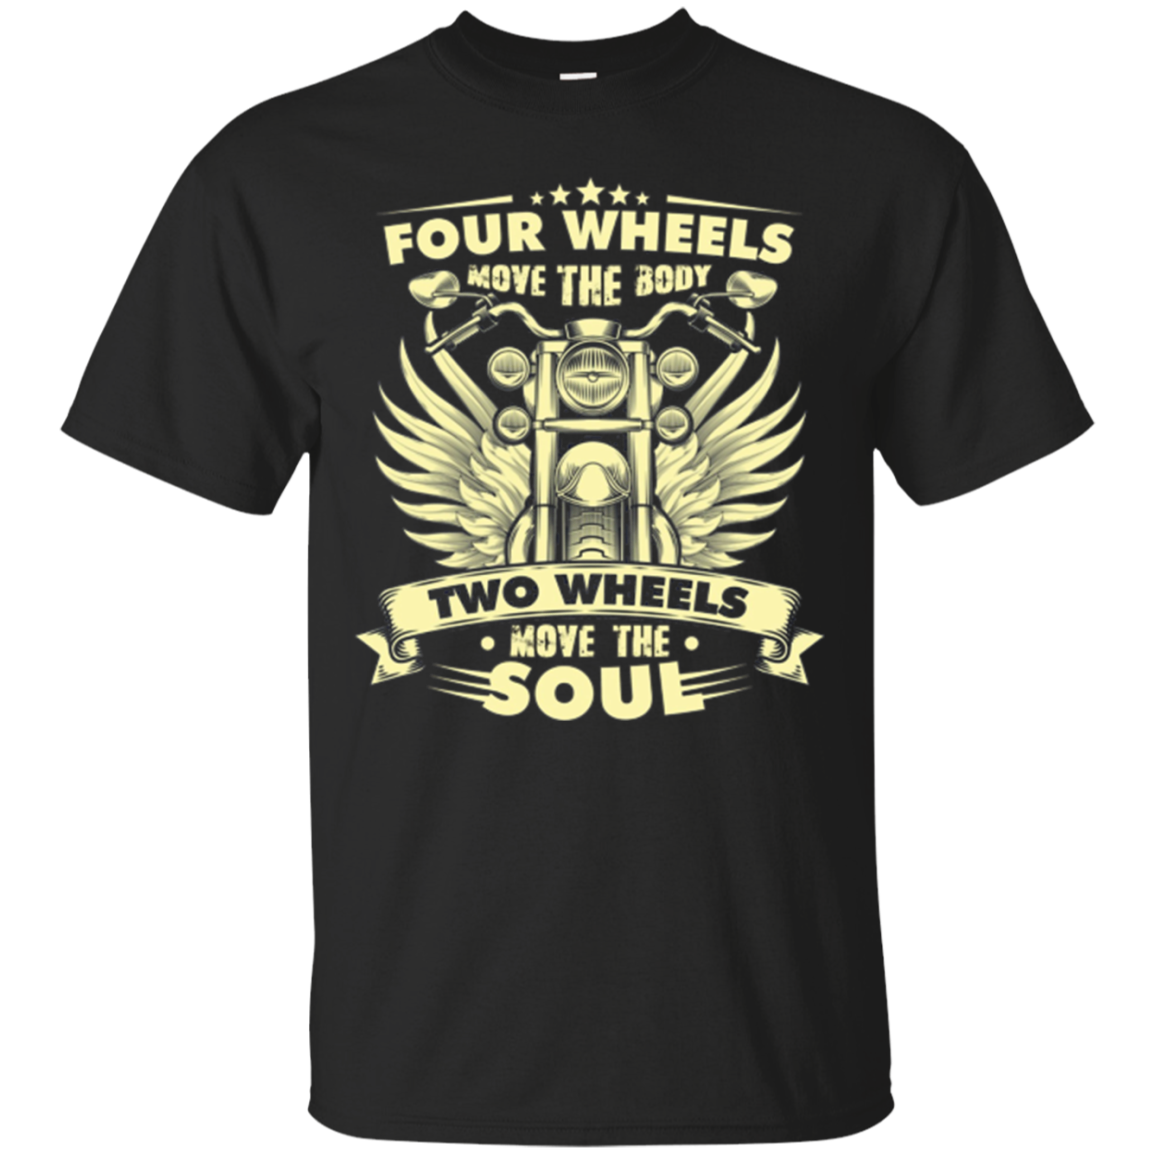 Motorcycle Racing Two Wheels Move The Soul Shirts